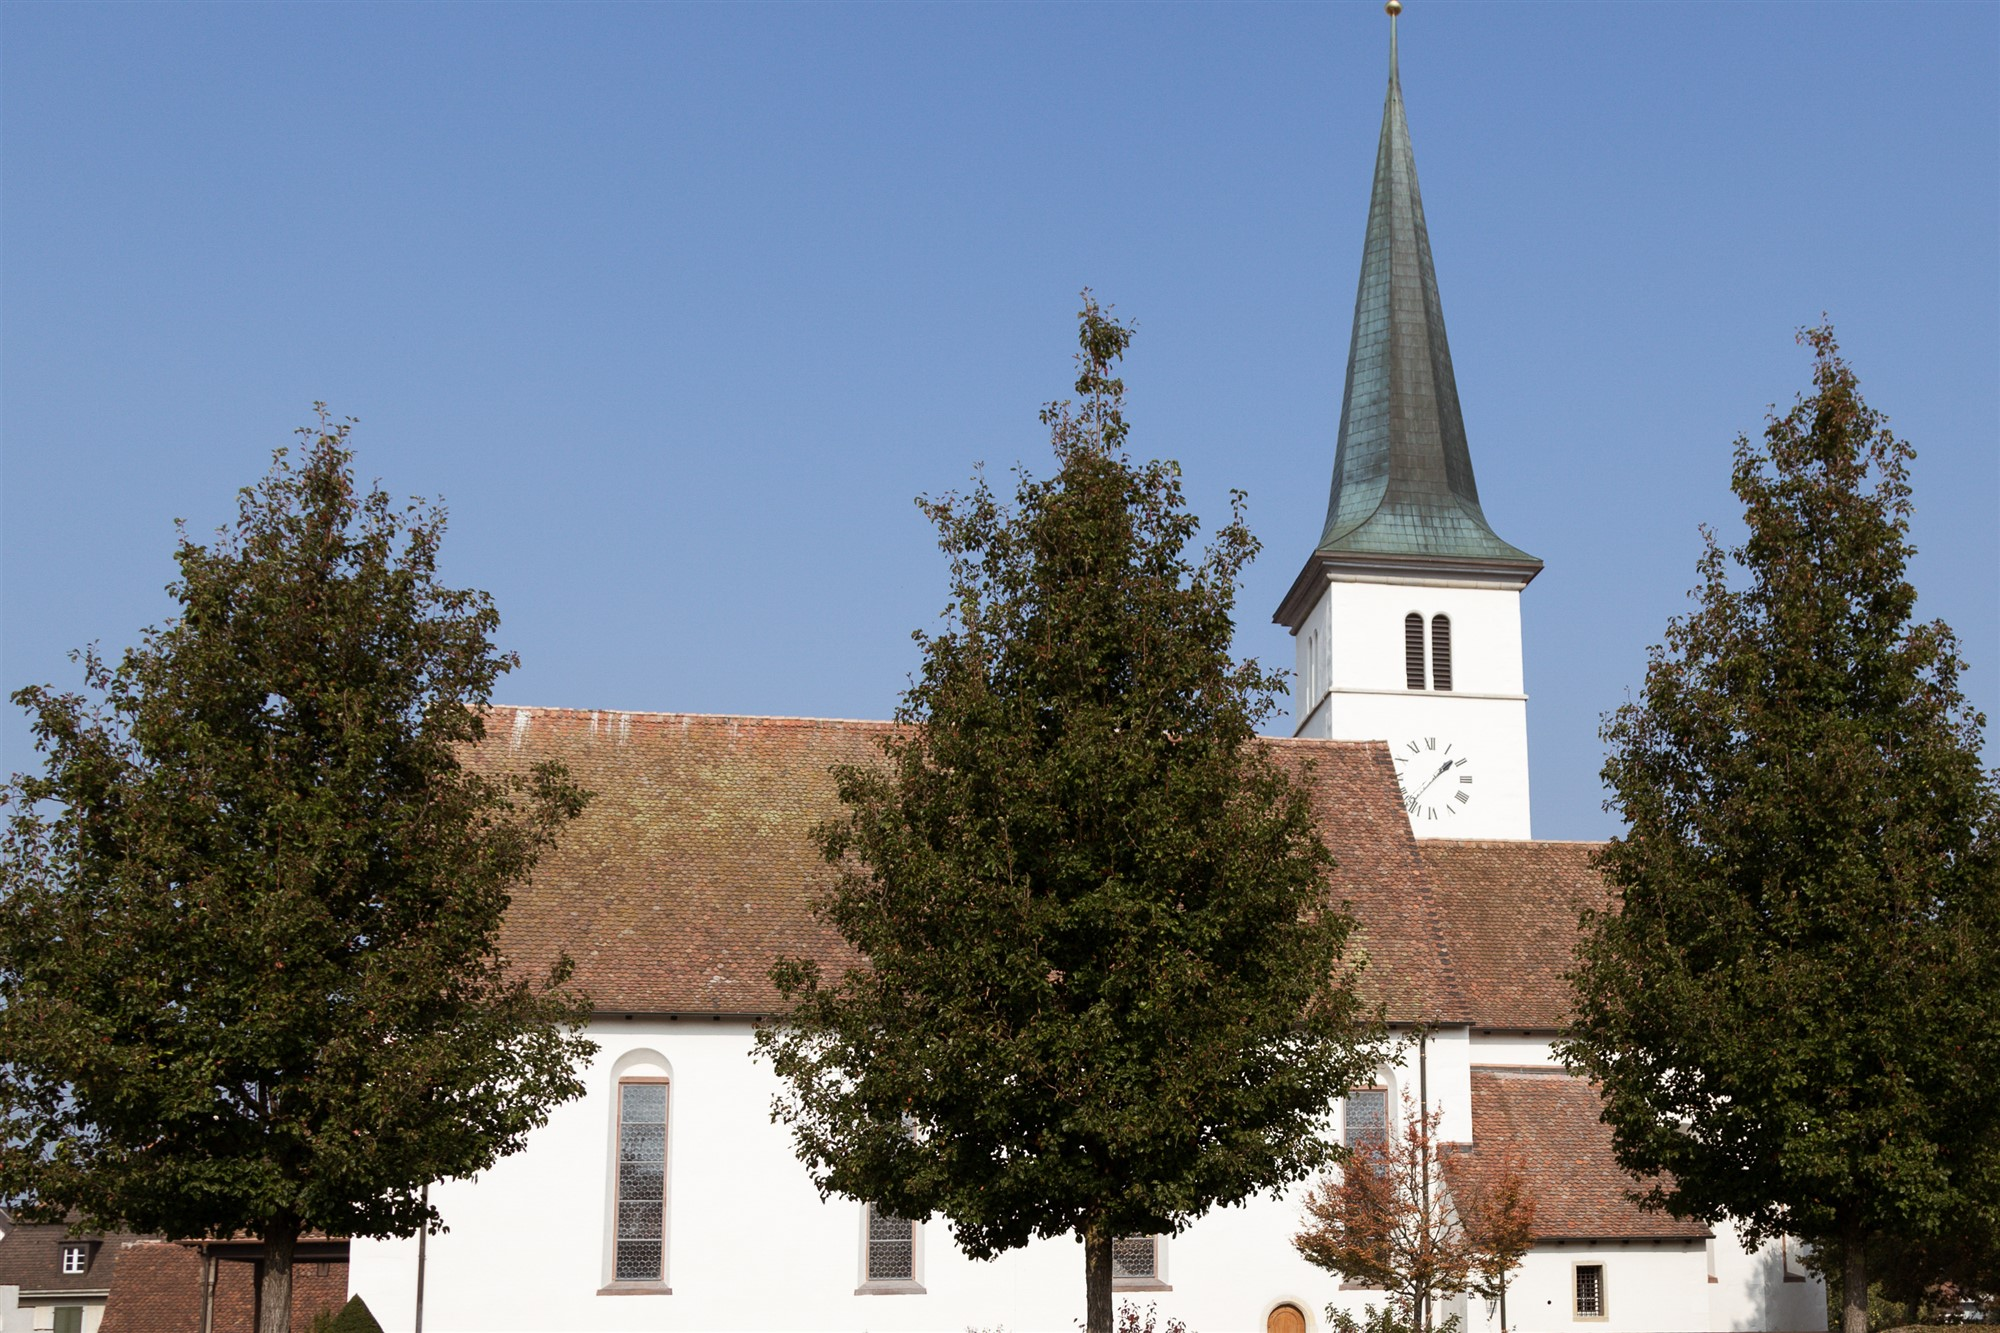 Die Kirche in Therwil